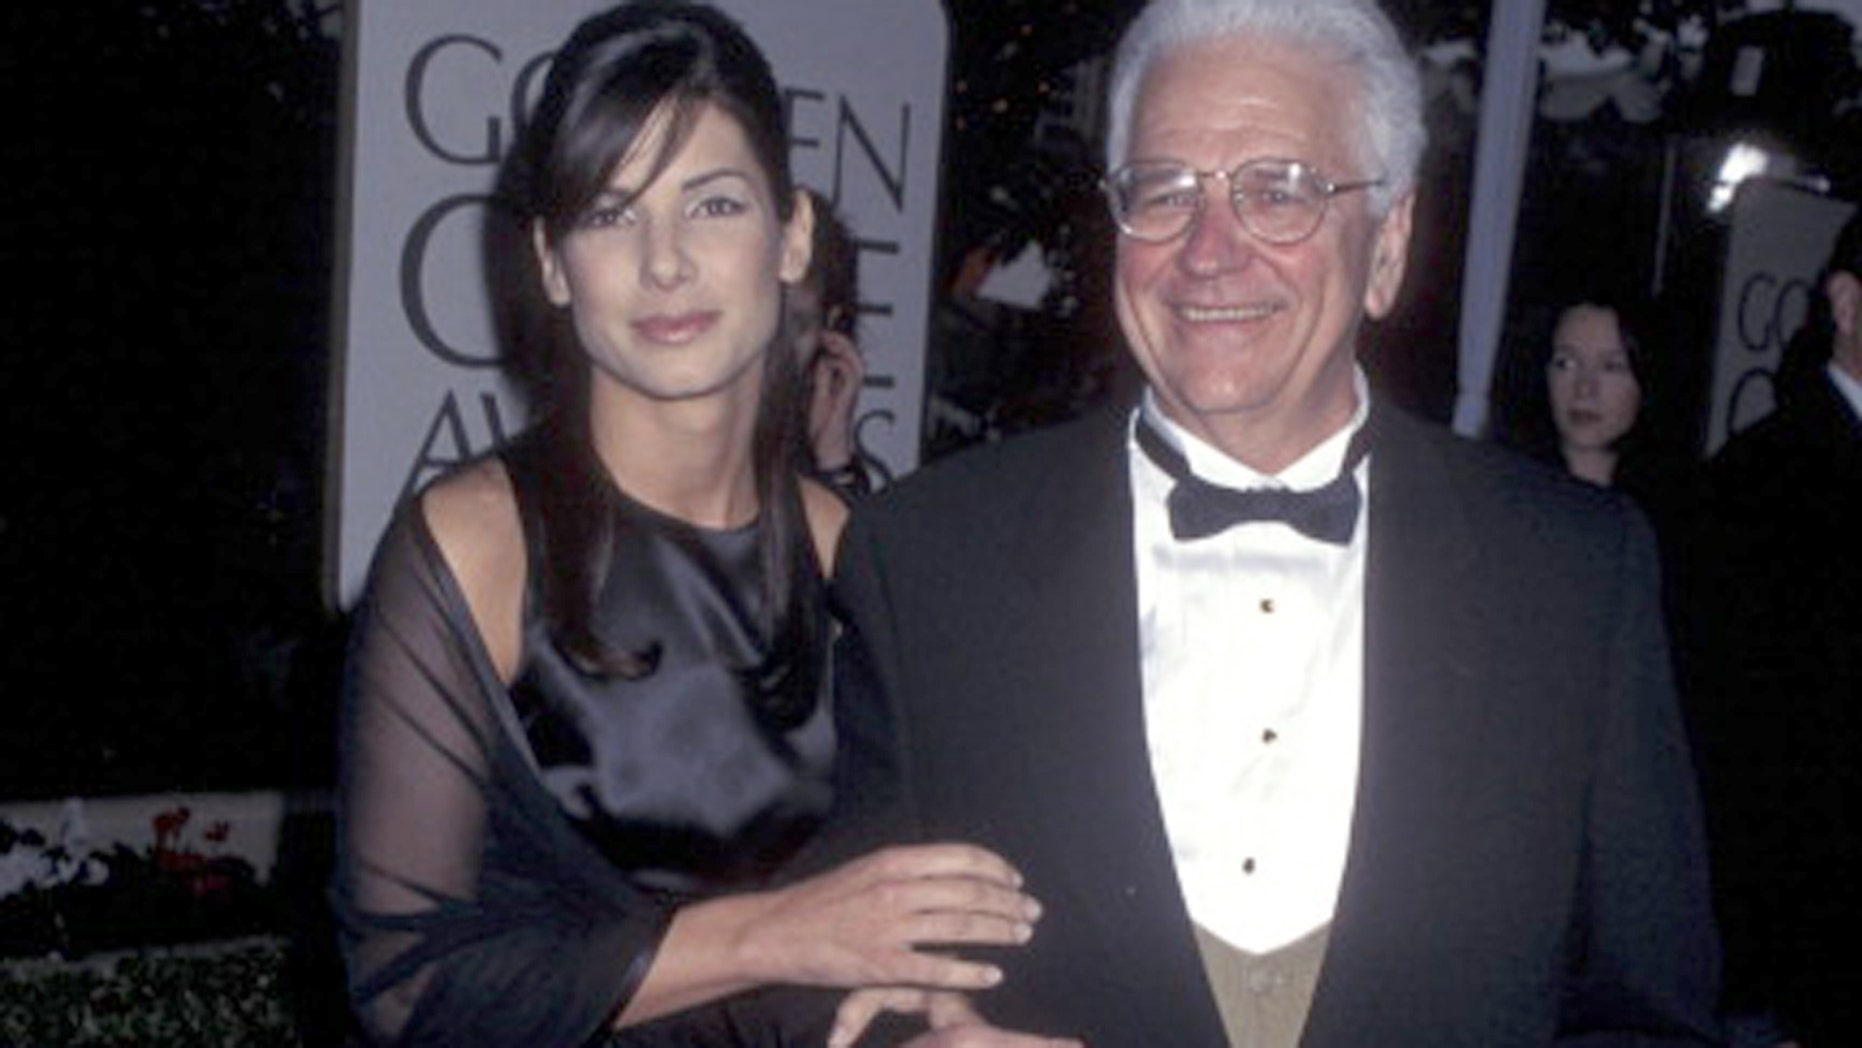 Sandra Bullock is mourning the loss of her father, John Bullock. Here, Sandra and her father attend the 53rd Golden Globe Awards on Jan. 21, 1996 in Beverly Hills, Calif.